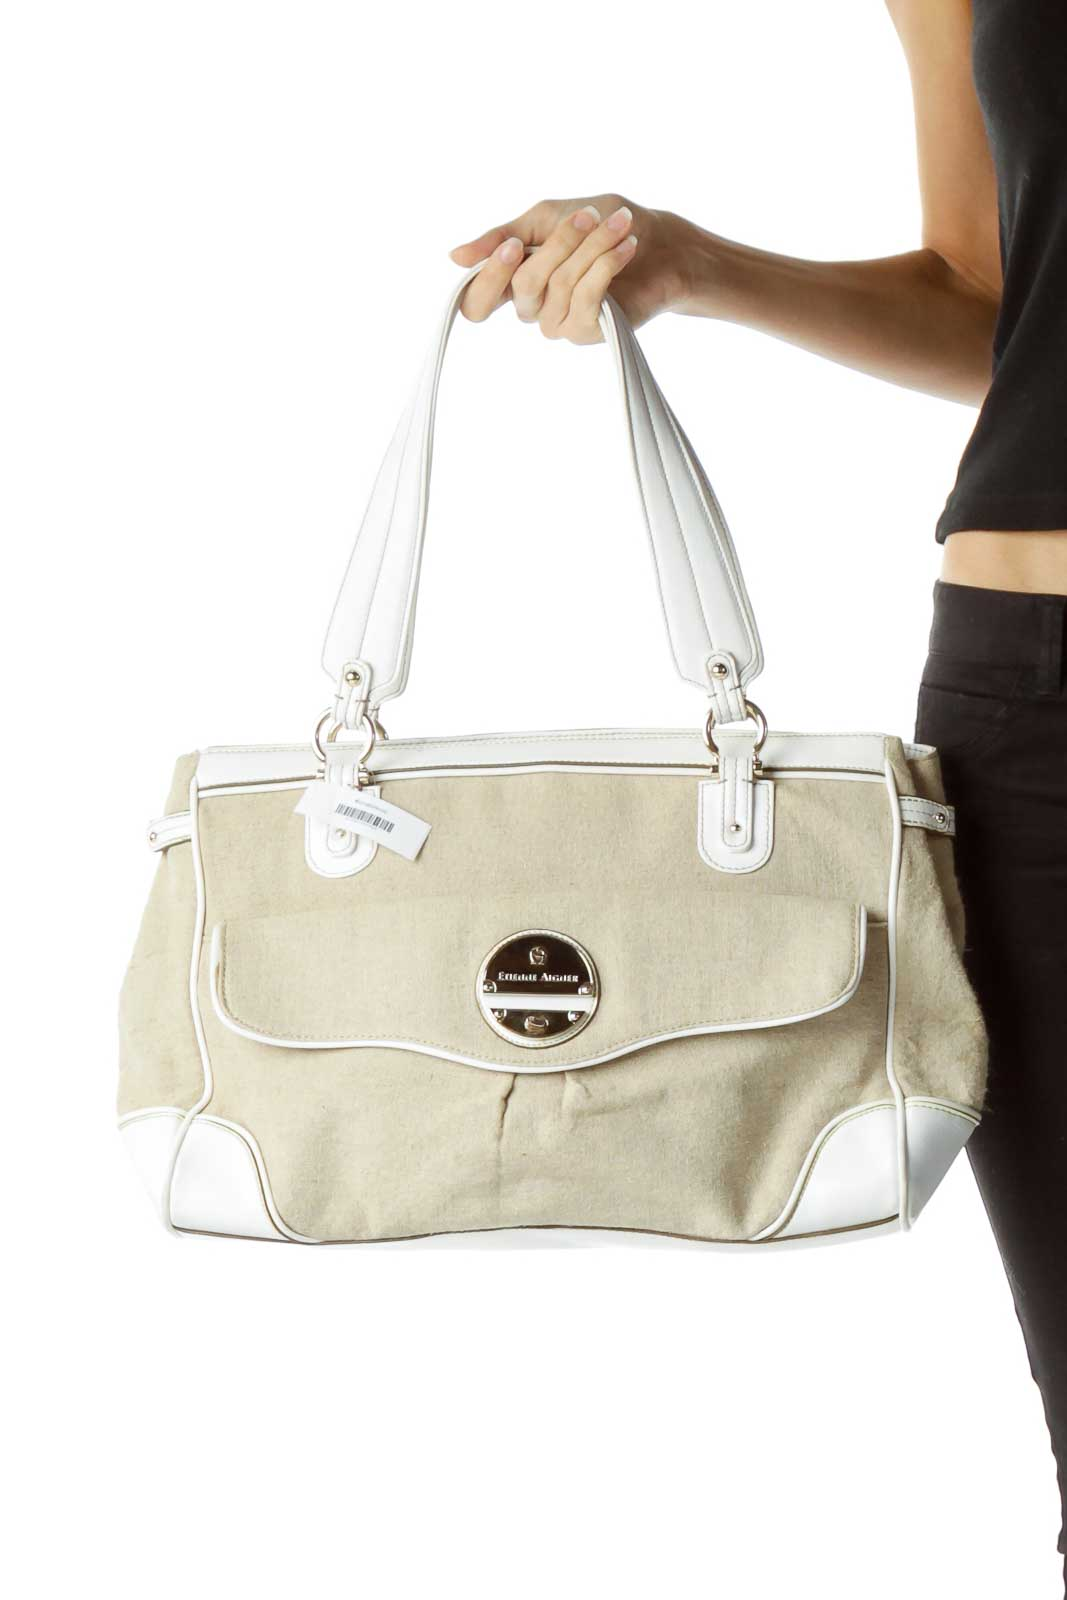 Beige Linen White Leather Handle Tote